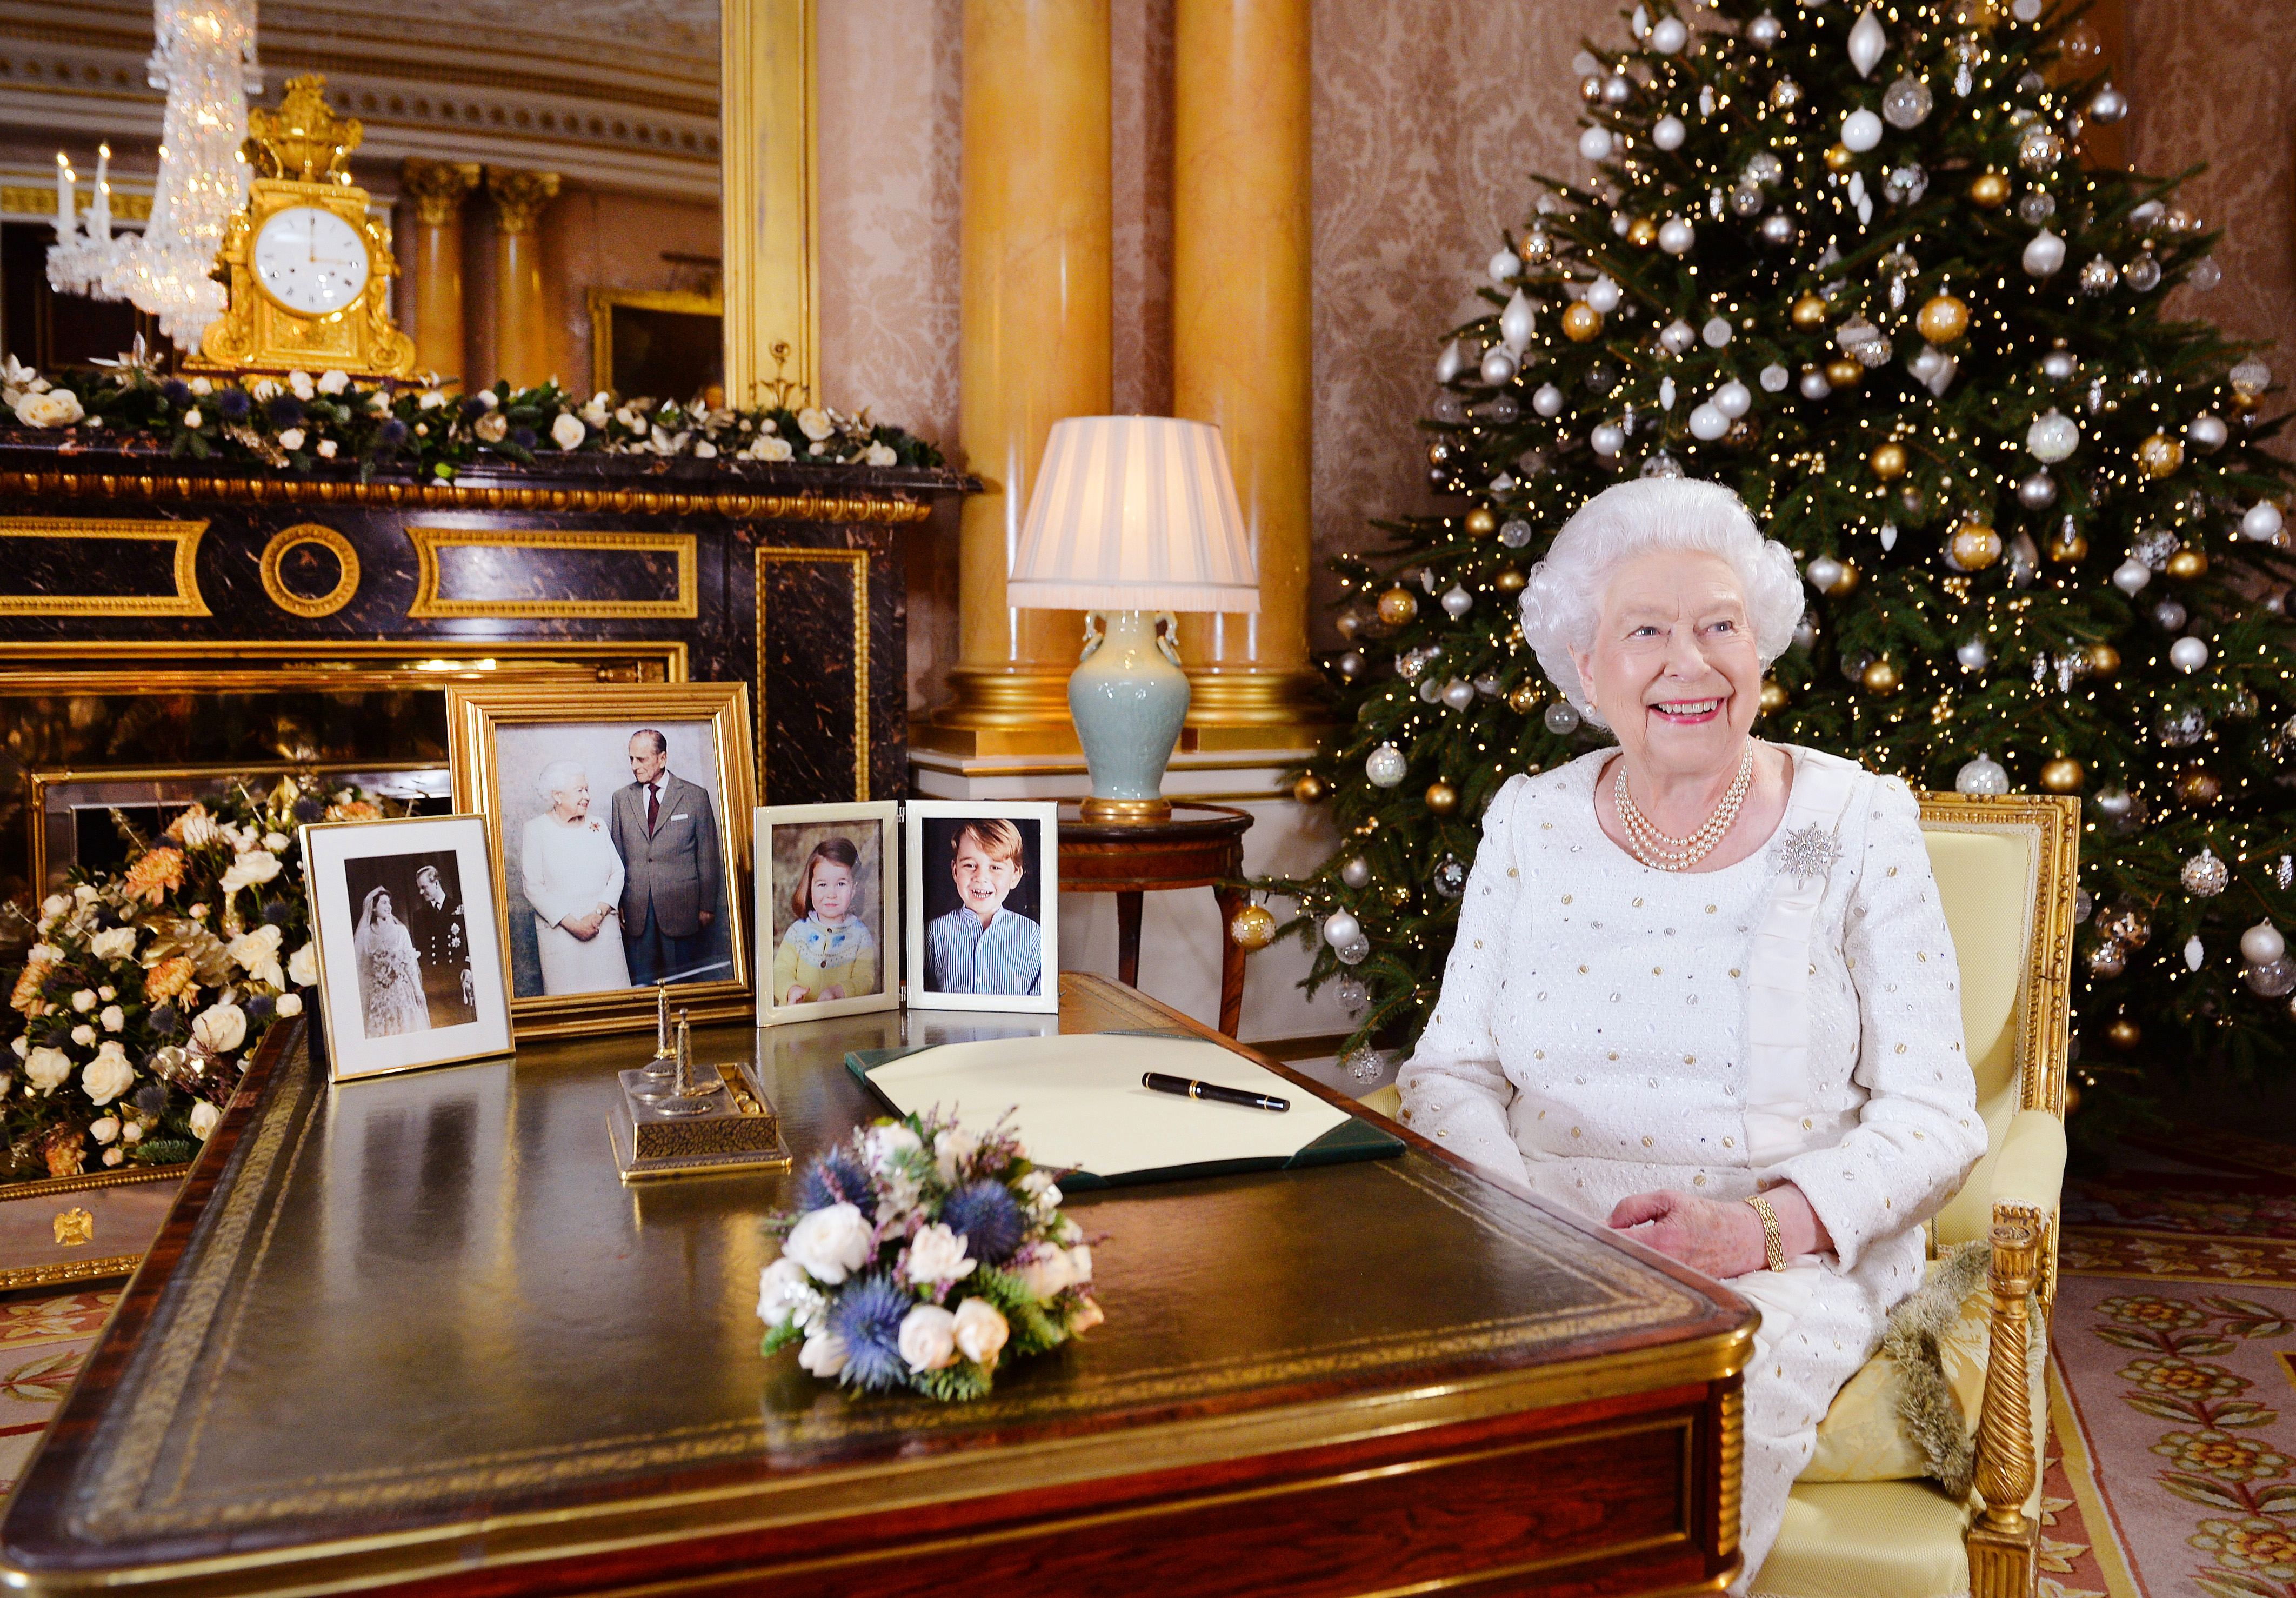 Queen Elizabeth at Buckingham Palace during Christmas